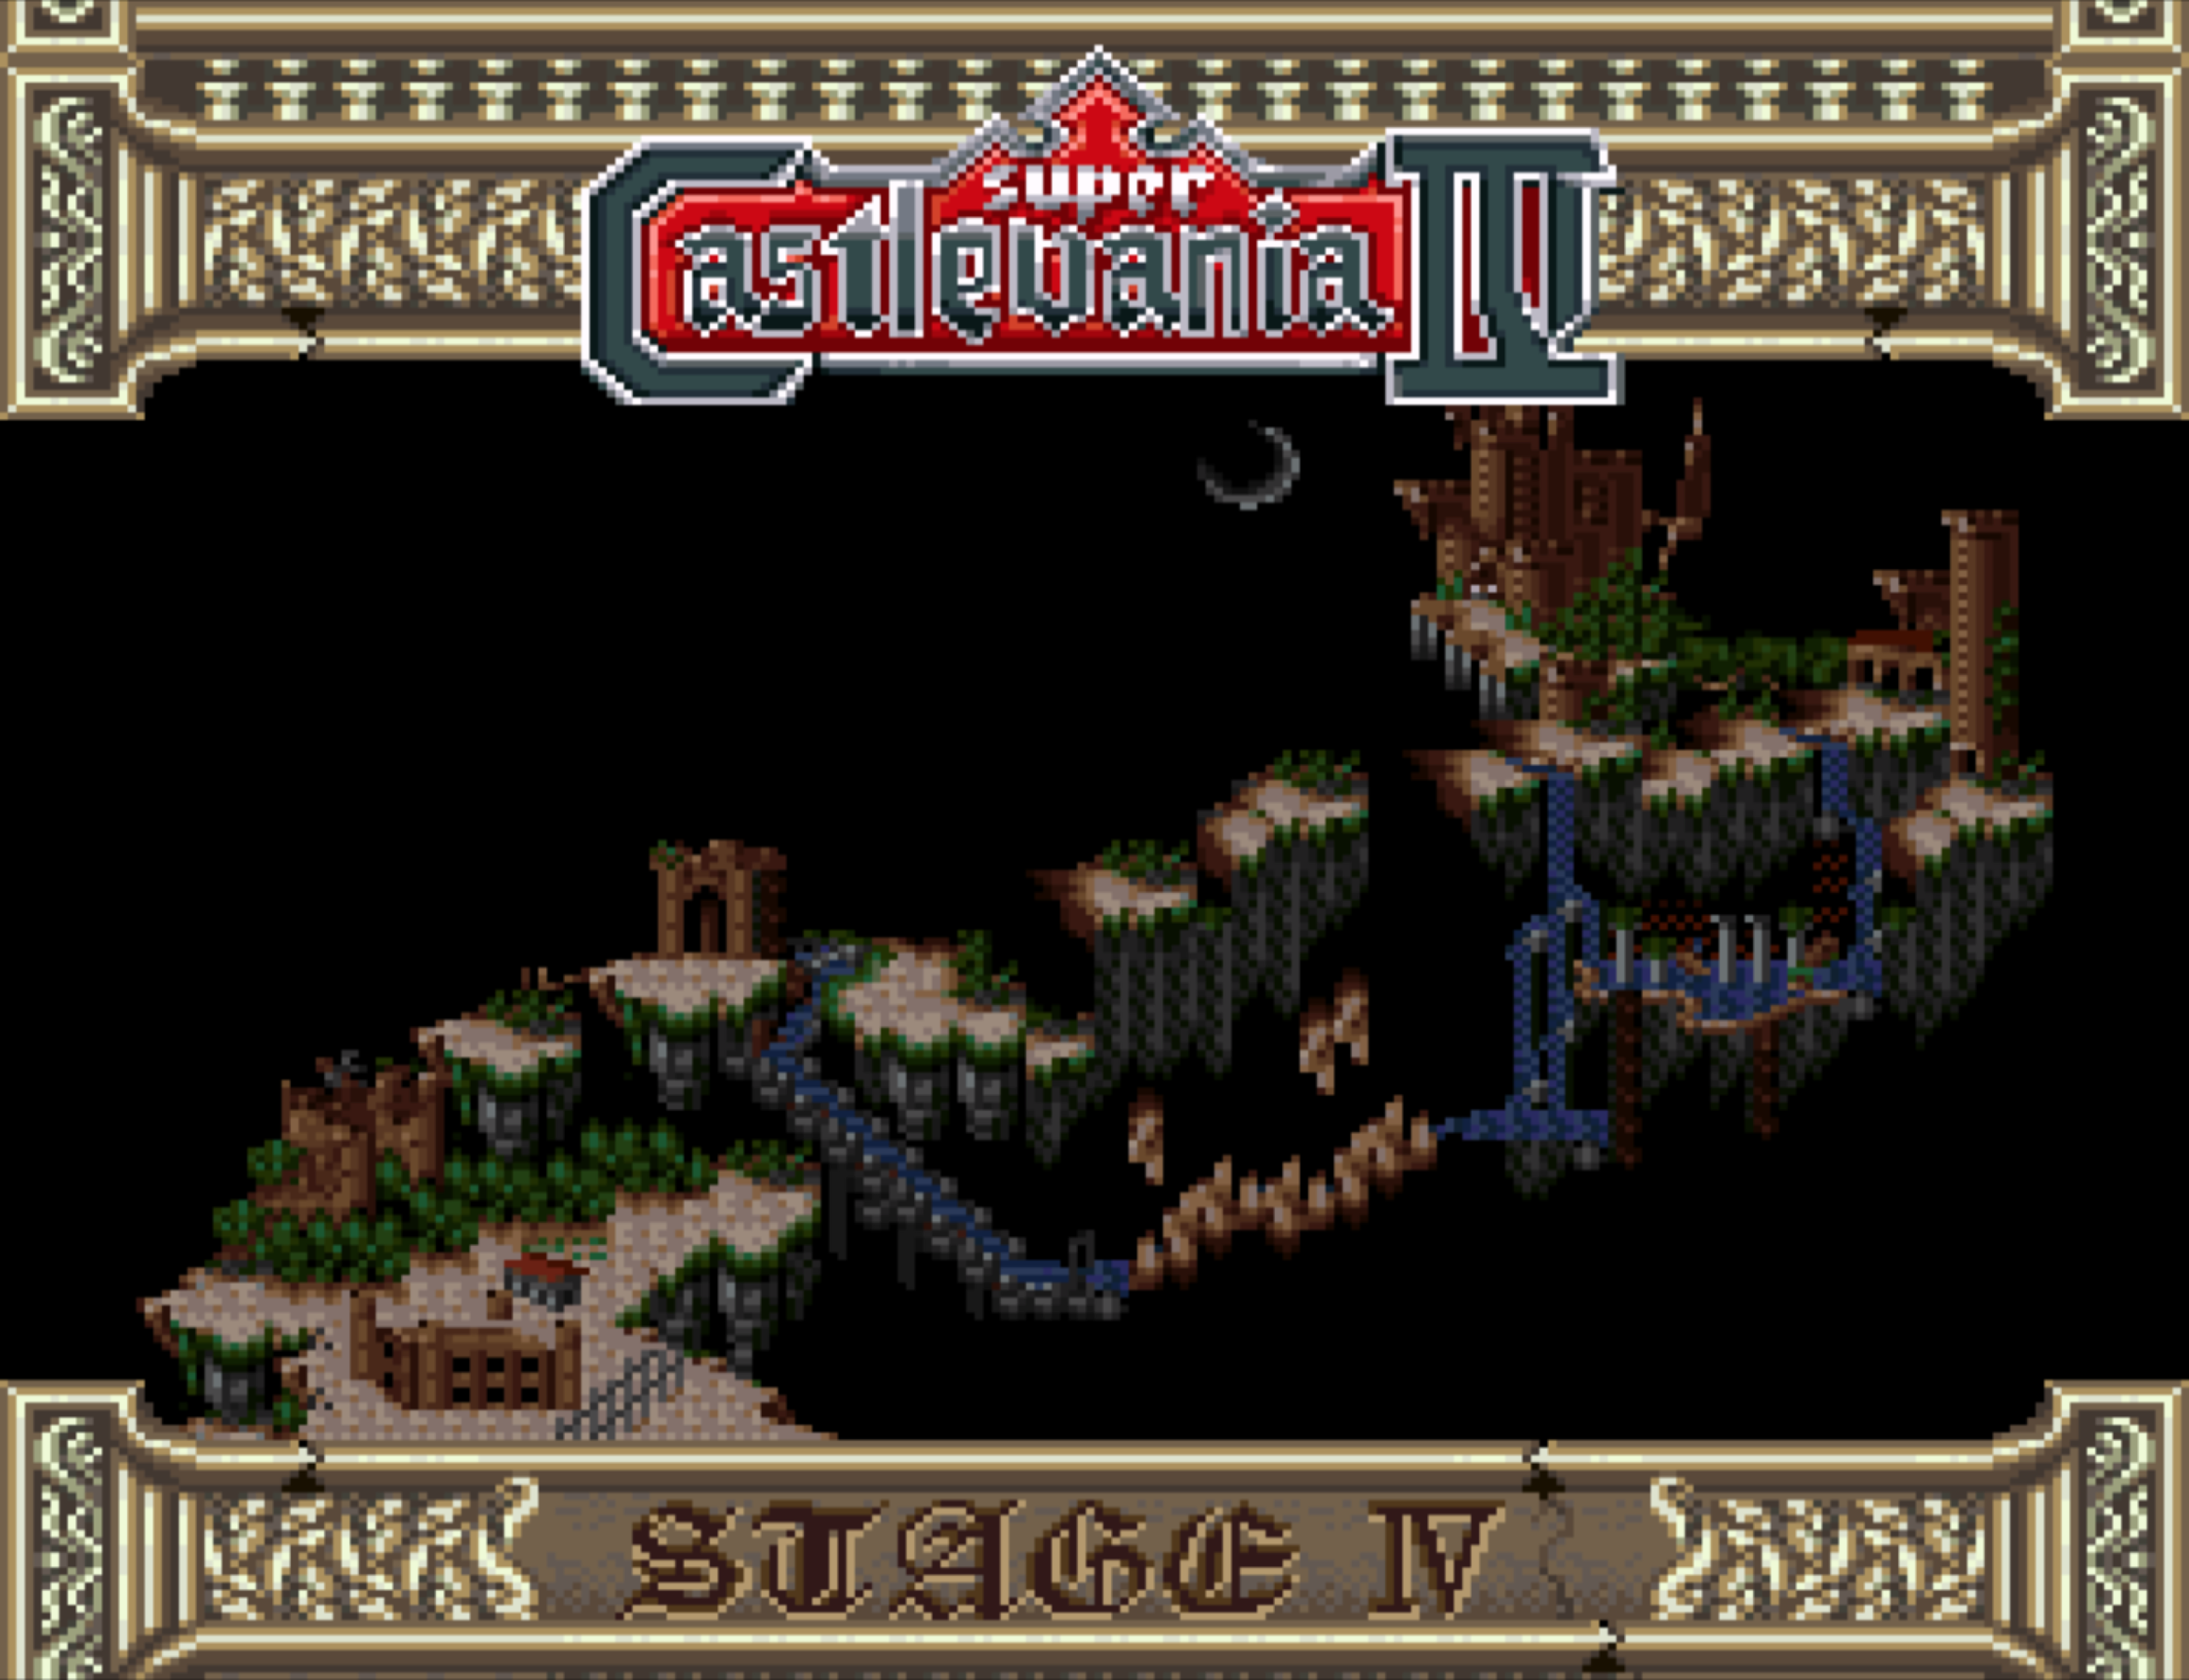 The overworld map illustrates the journey ahead.